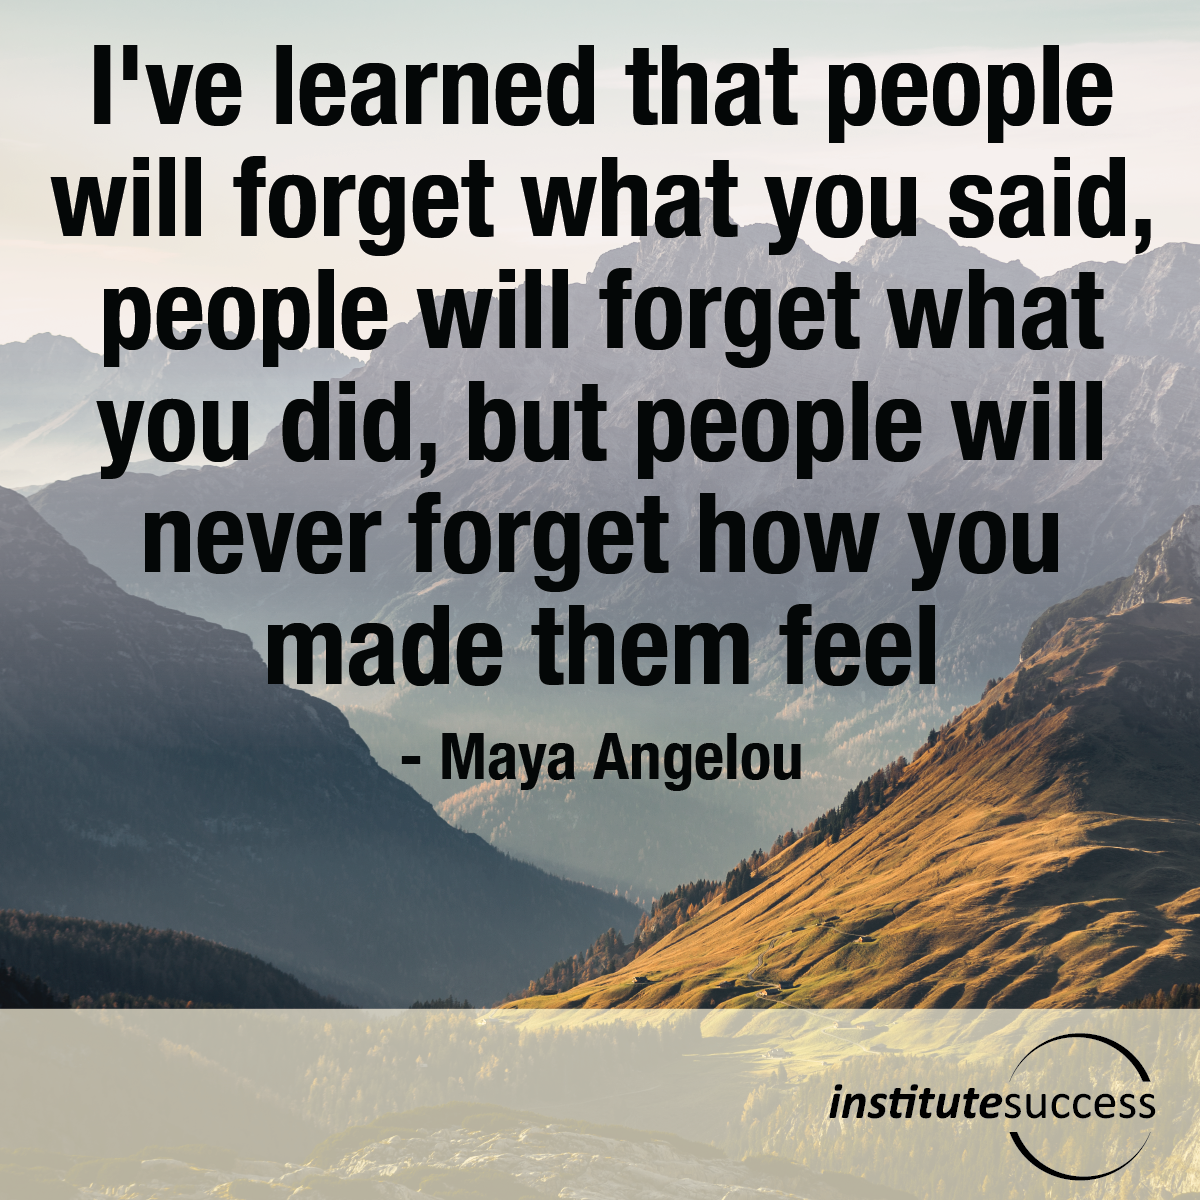 I've learned that people will forget what you said, people will forget what you did, but people will never forget how you made them feel – Maya Angelou